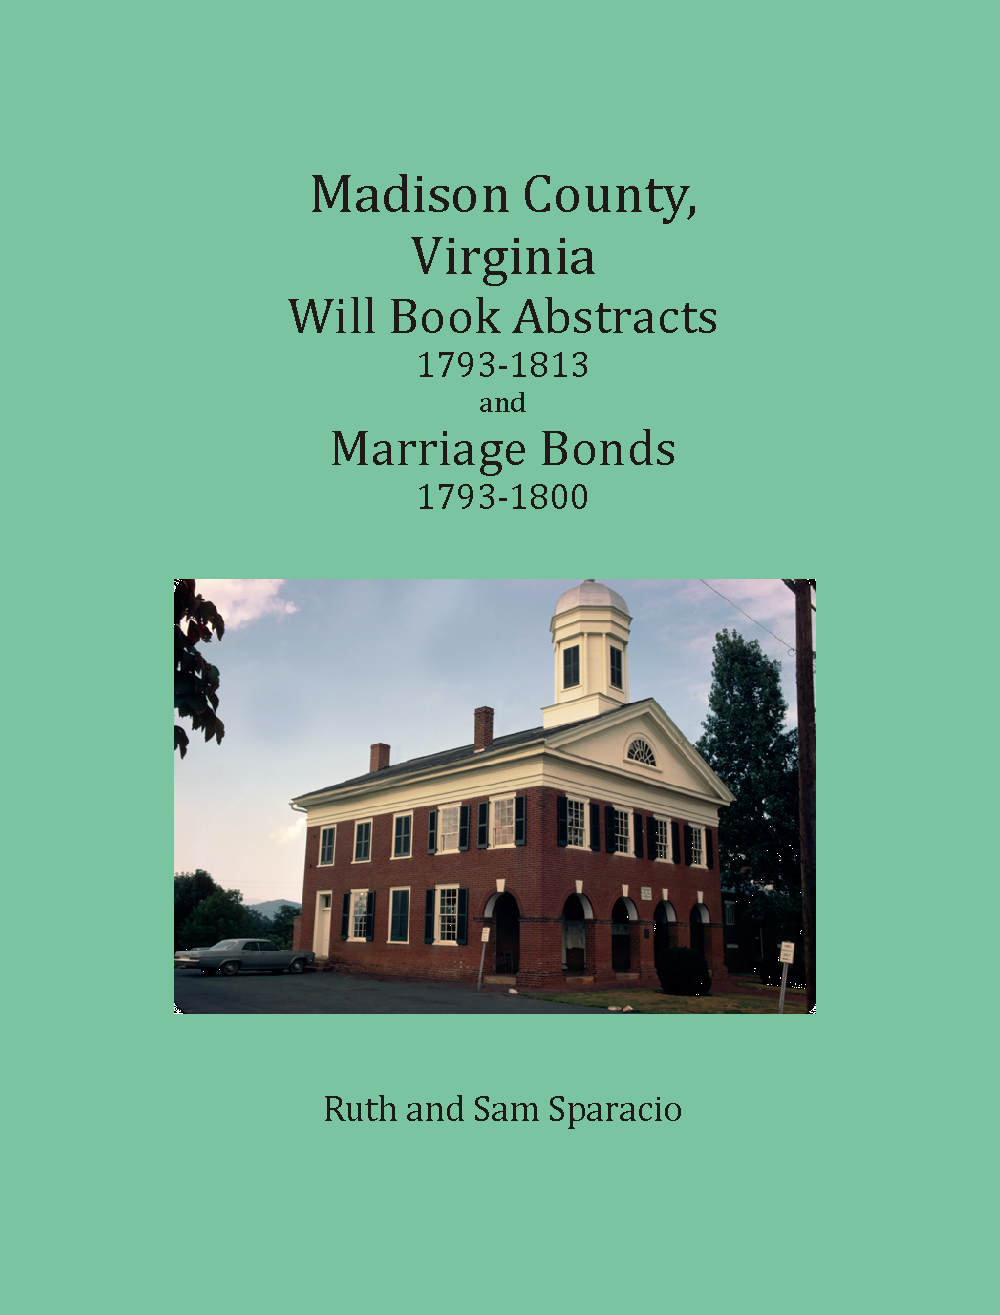 Madison County, Virginia Deed Book 1793-1813 and Marriage Bonds 1793-1800